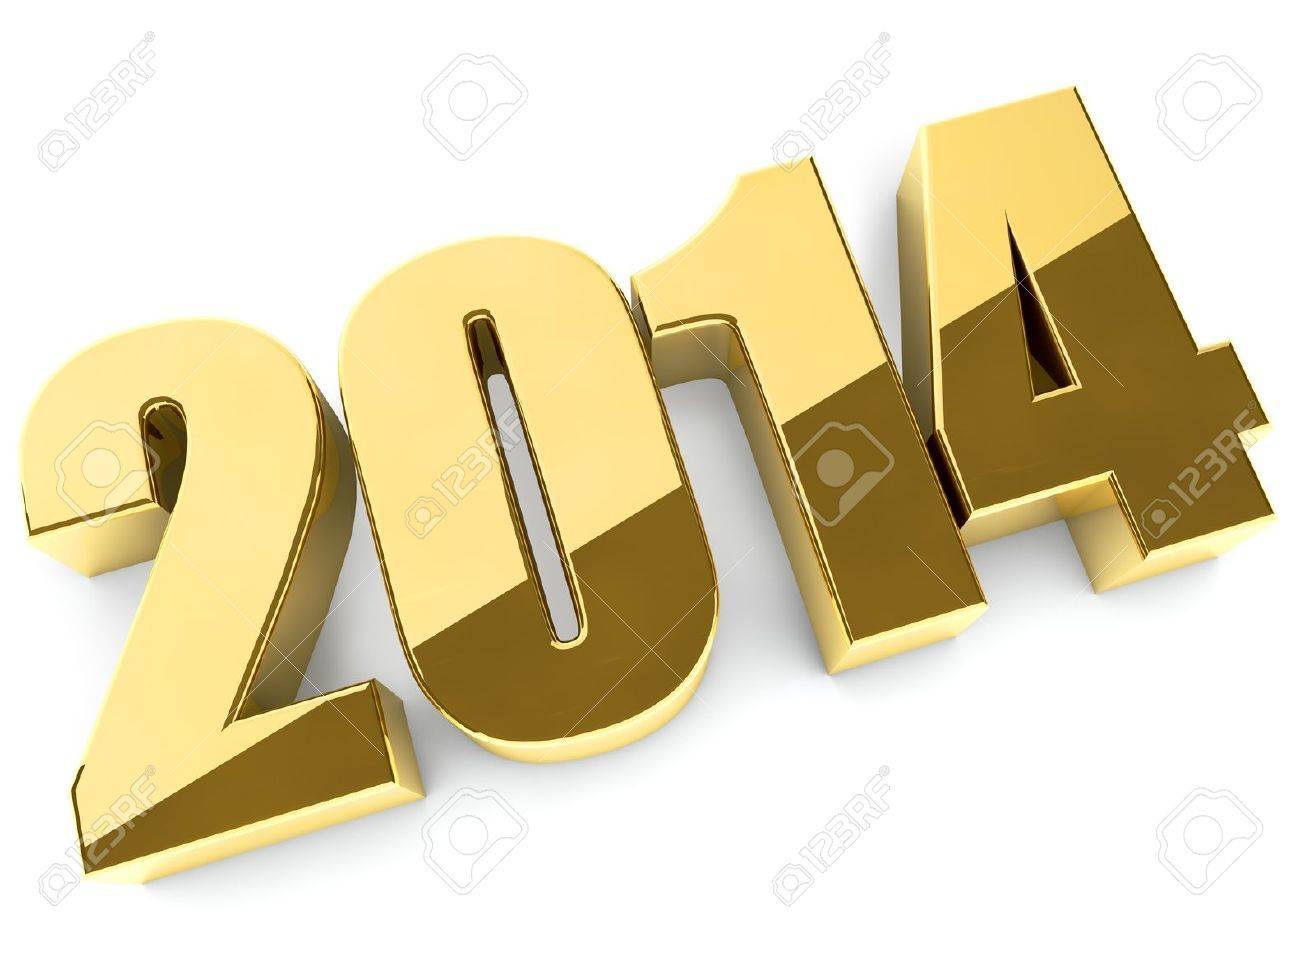 3D 2014 year golden figures with shadow Stock Photo - 17599682